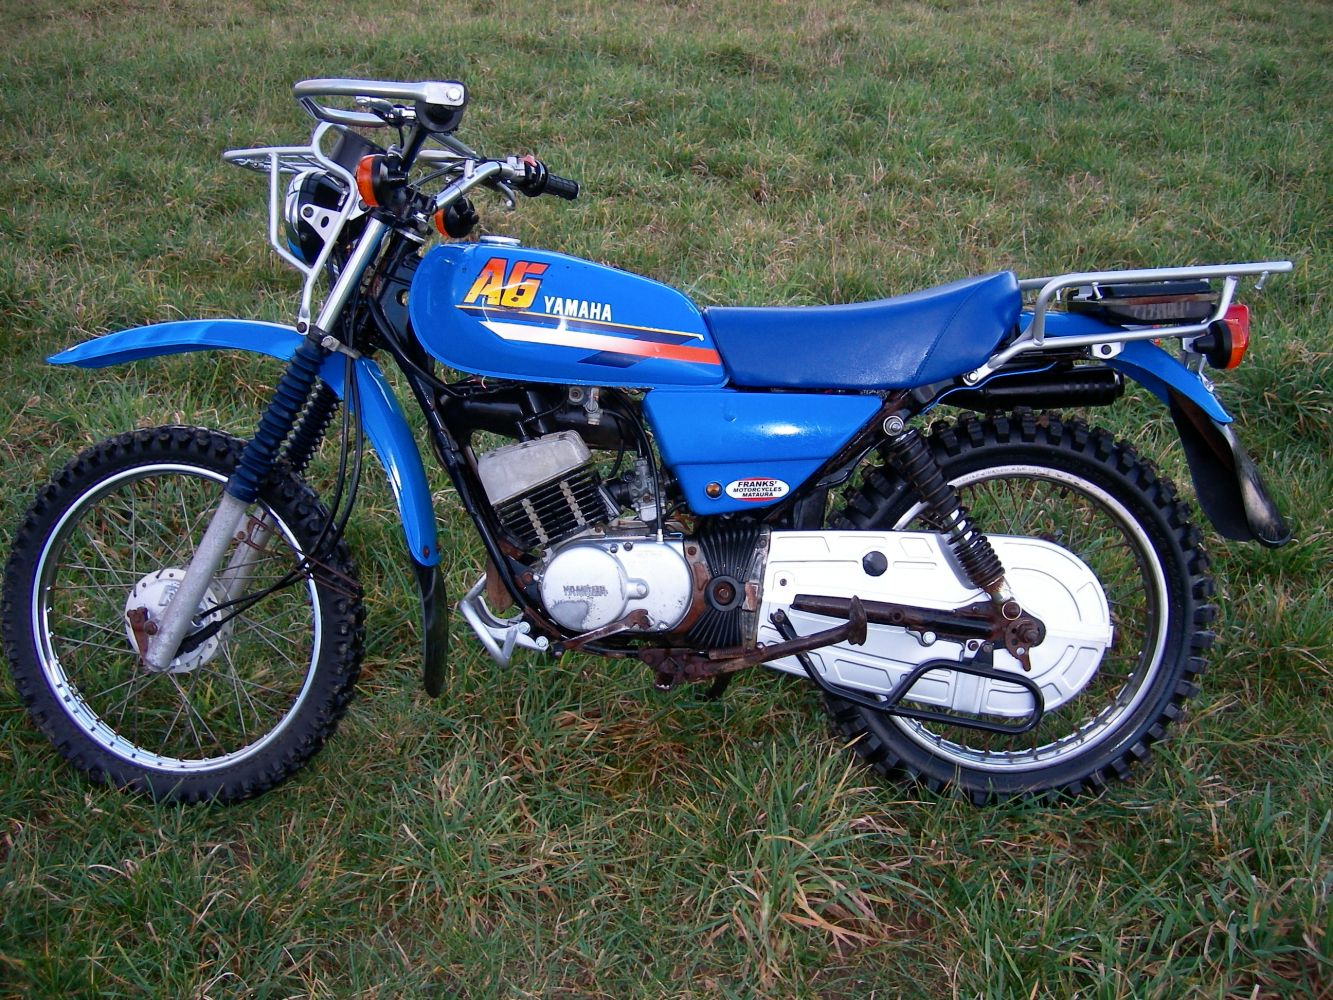 yamaha ytm 200 service manual